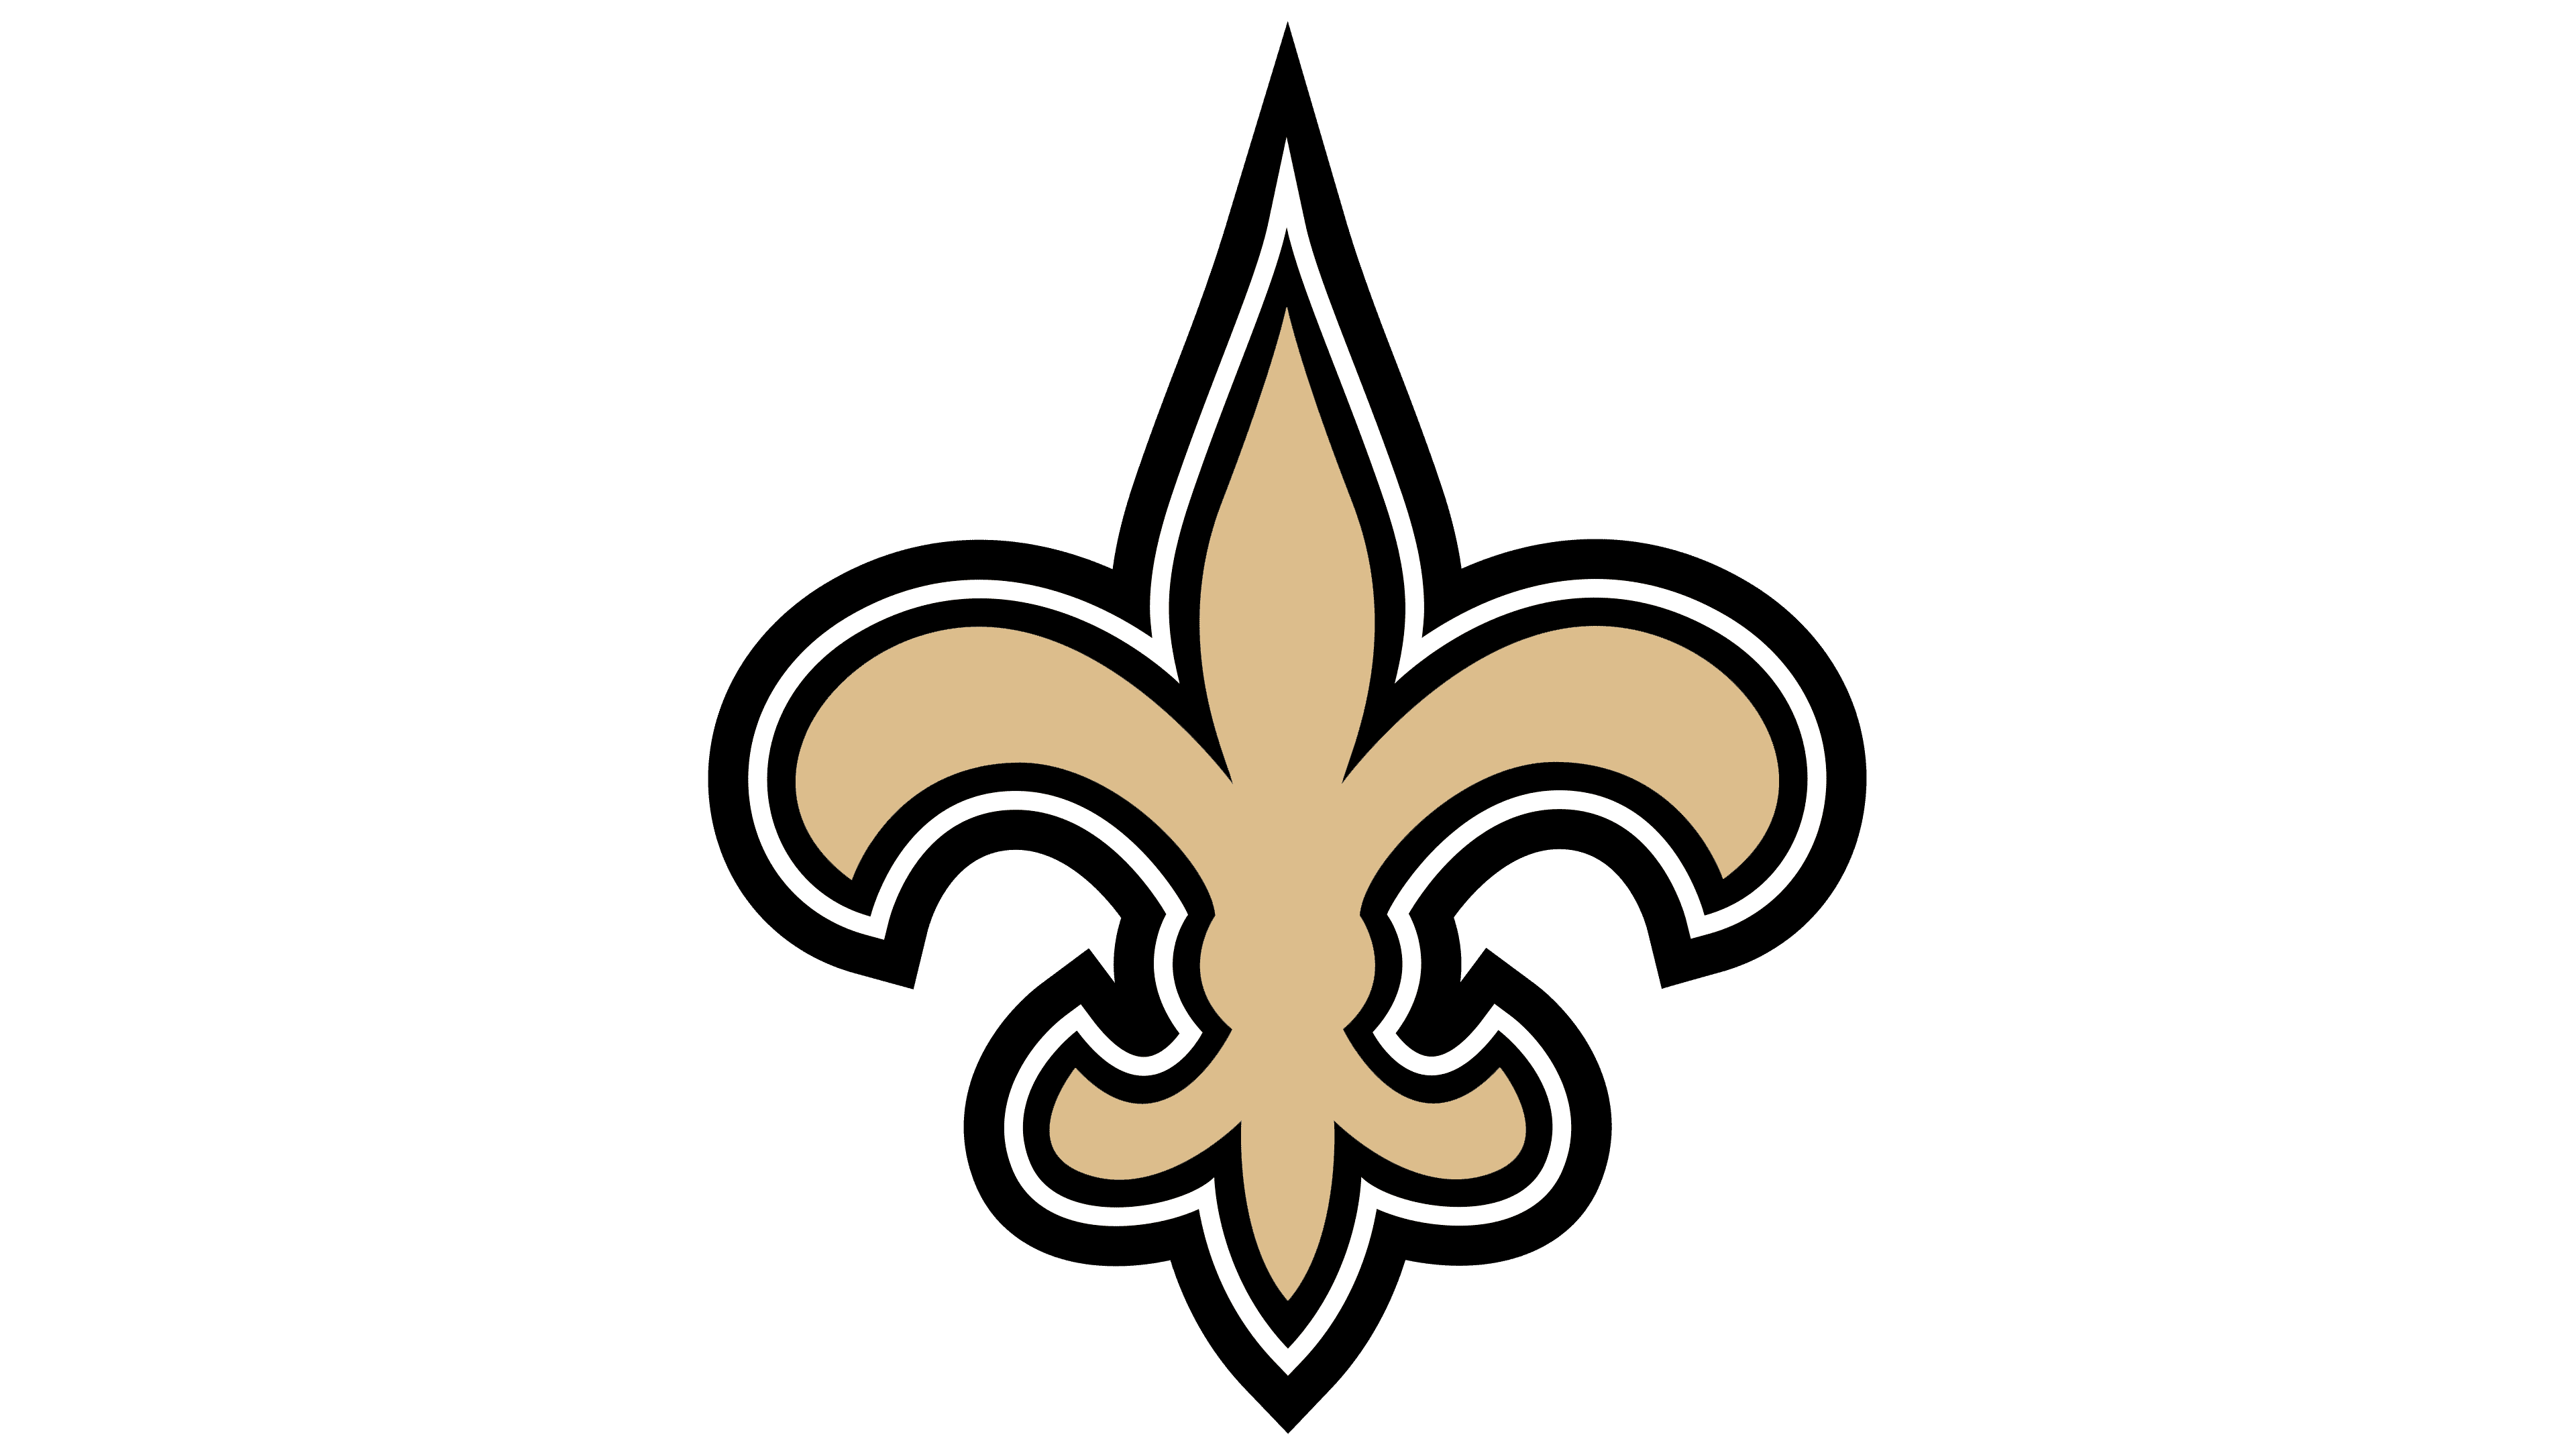 New Orleans Saints Logo | The most famous brands and company logos in the  world